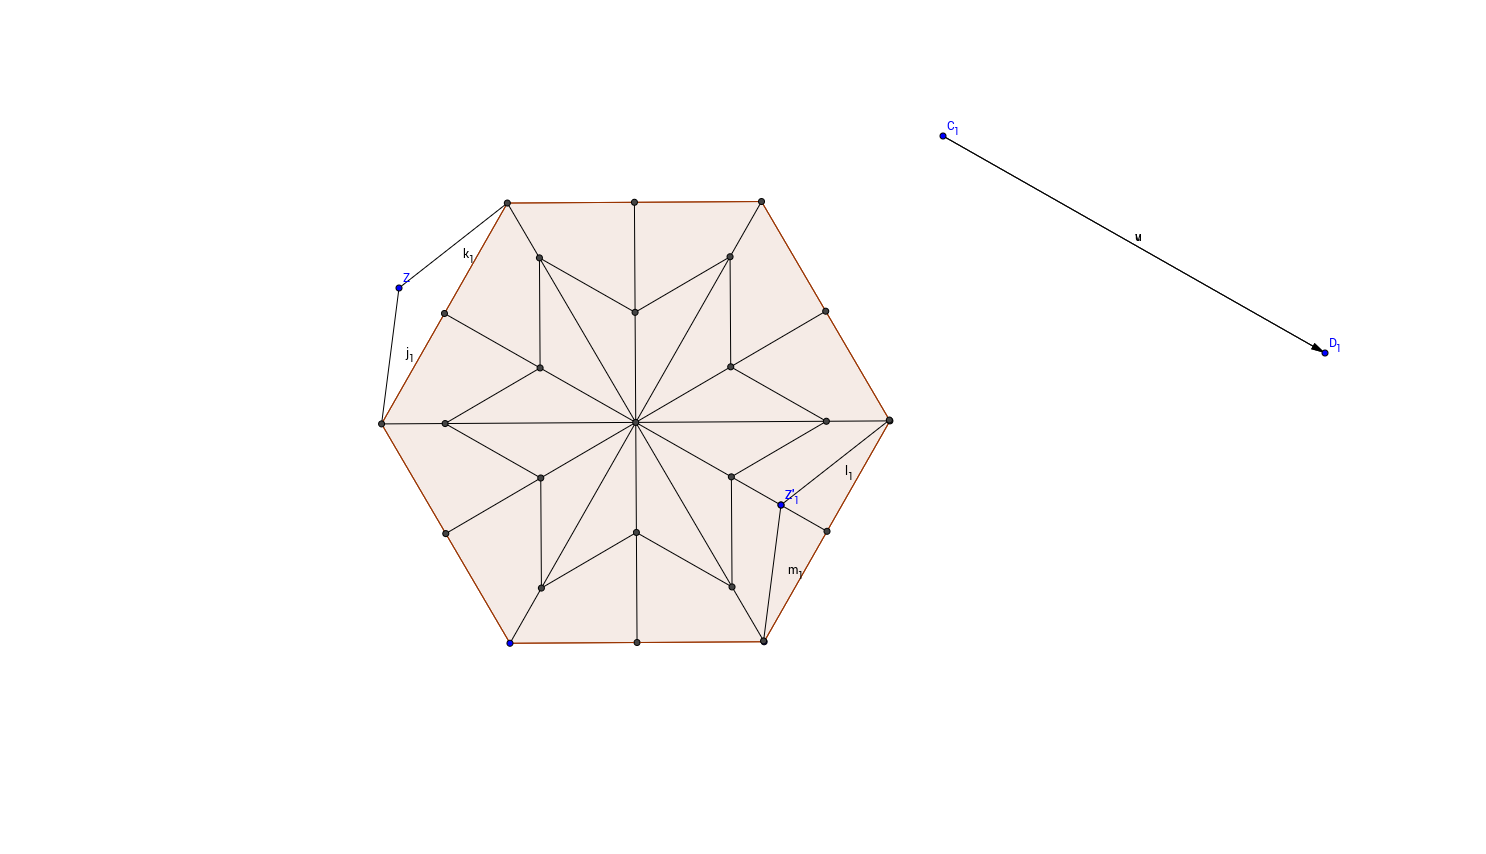 Step 4: Starting to create the outer part of the tesselation